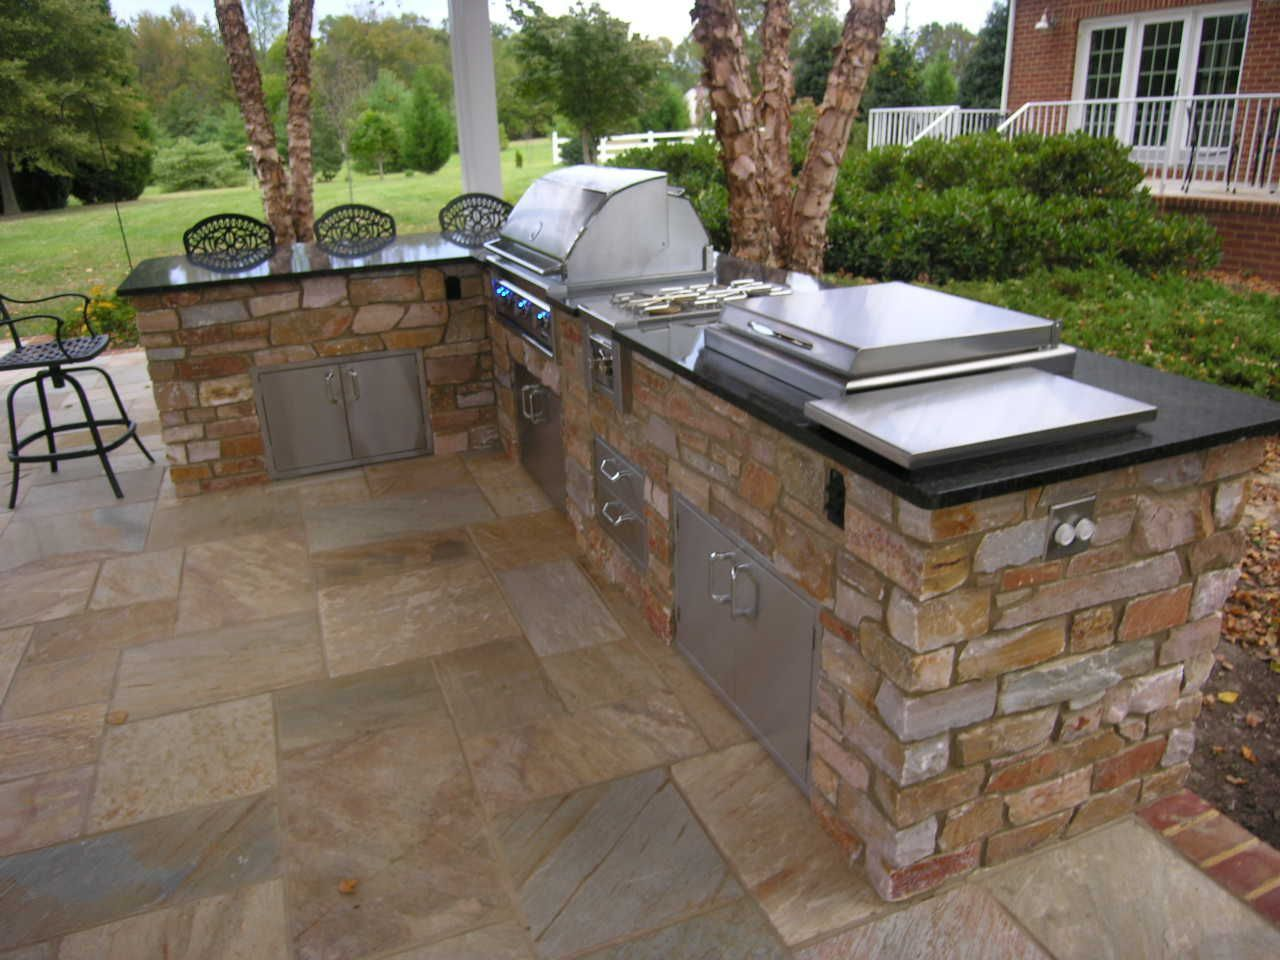 All About Outdoor Kitchen Ideas On A Budget Diy Covered Tropical Layout Small Rust Outdoor Kitchen Design Diy Outdoor Kitchen Outdoor Kitchen Countertops